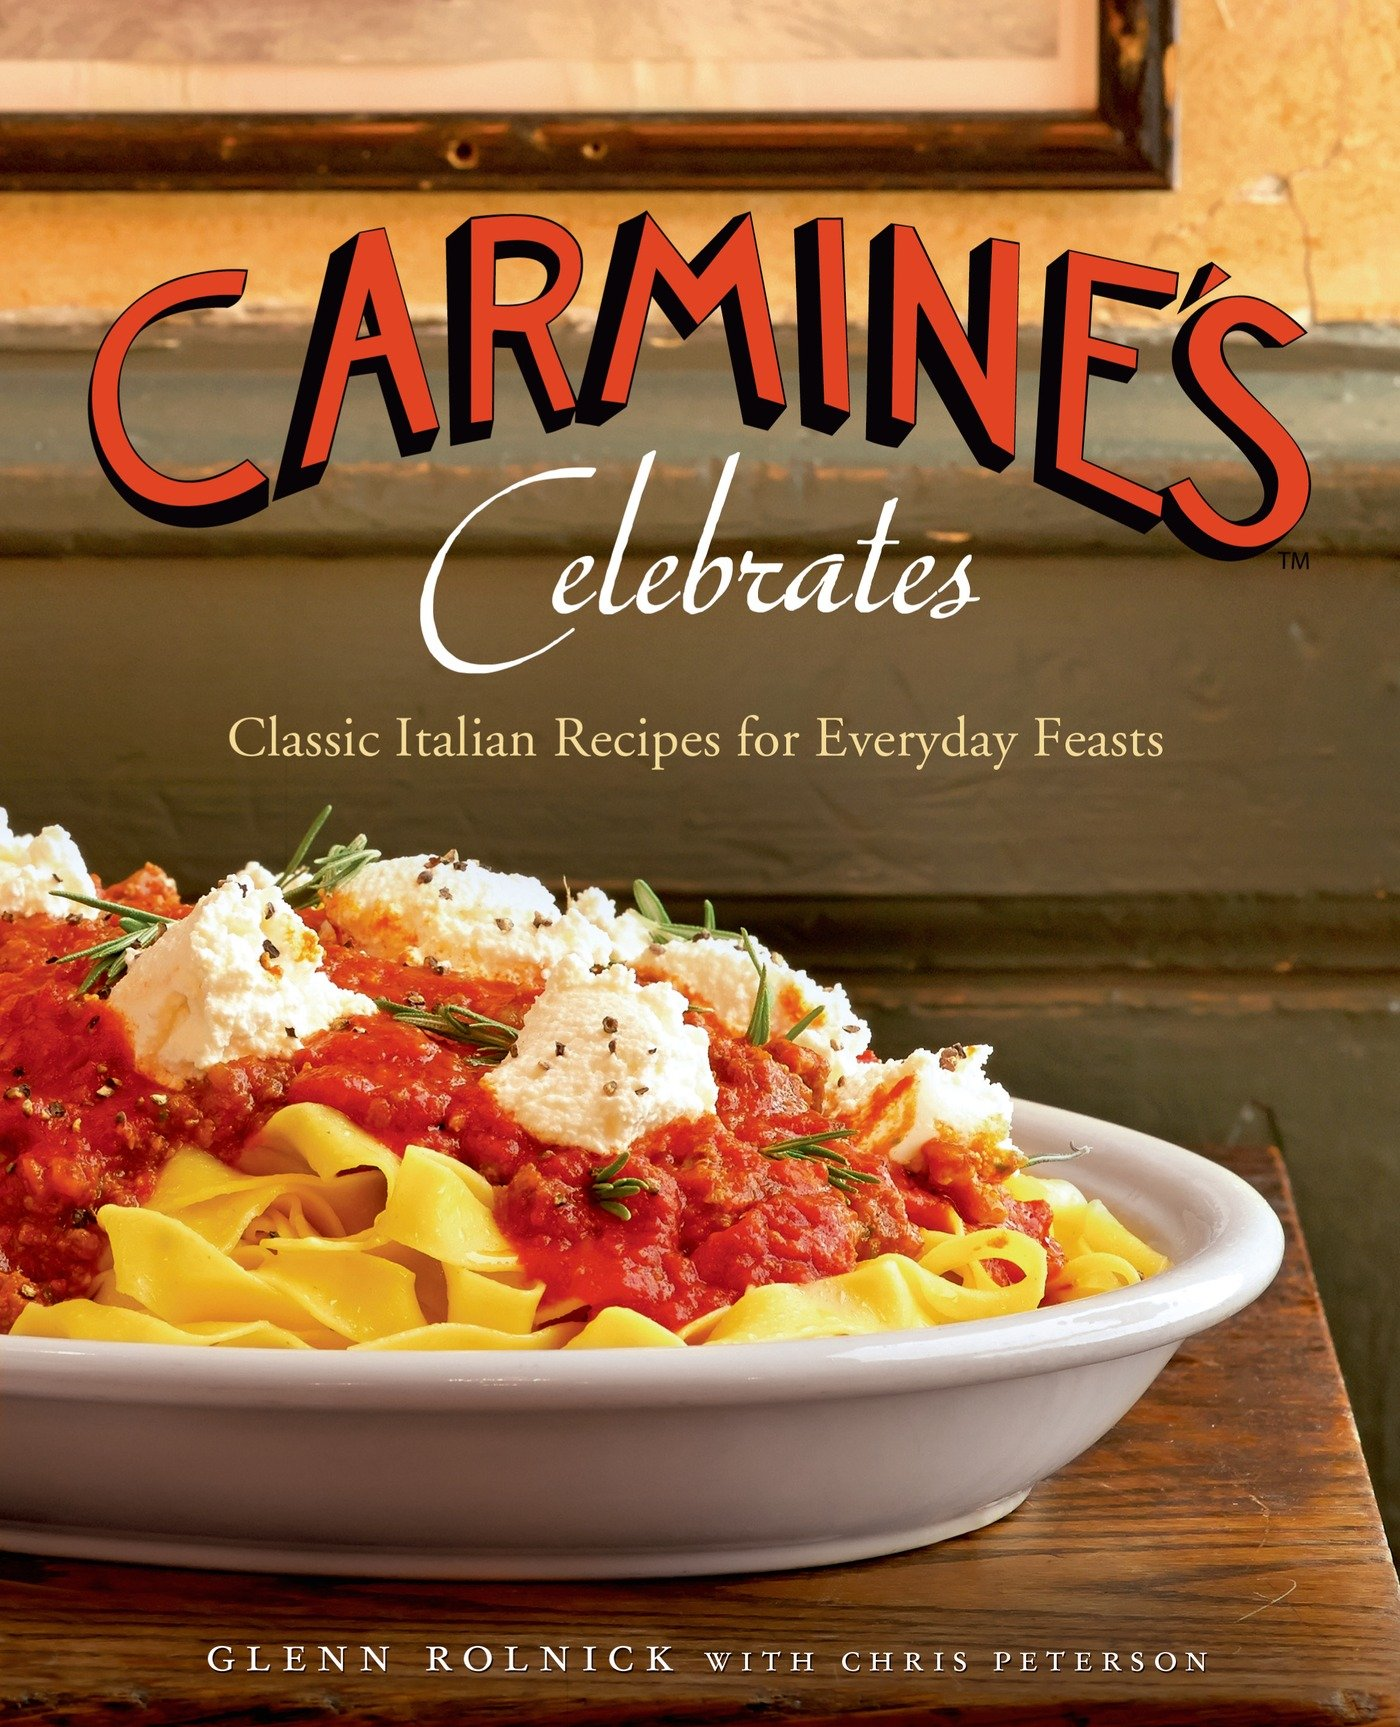 Carmines celebrates classic italian recipes for everyday feasts carmines celebrates classic italian recipes for everyday feasts glenn rolnick chris peterson 8601423531922 amazon books forumfinder Image collections